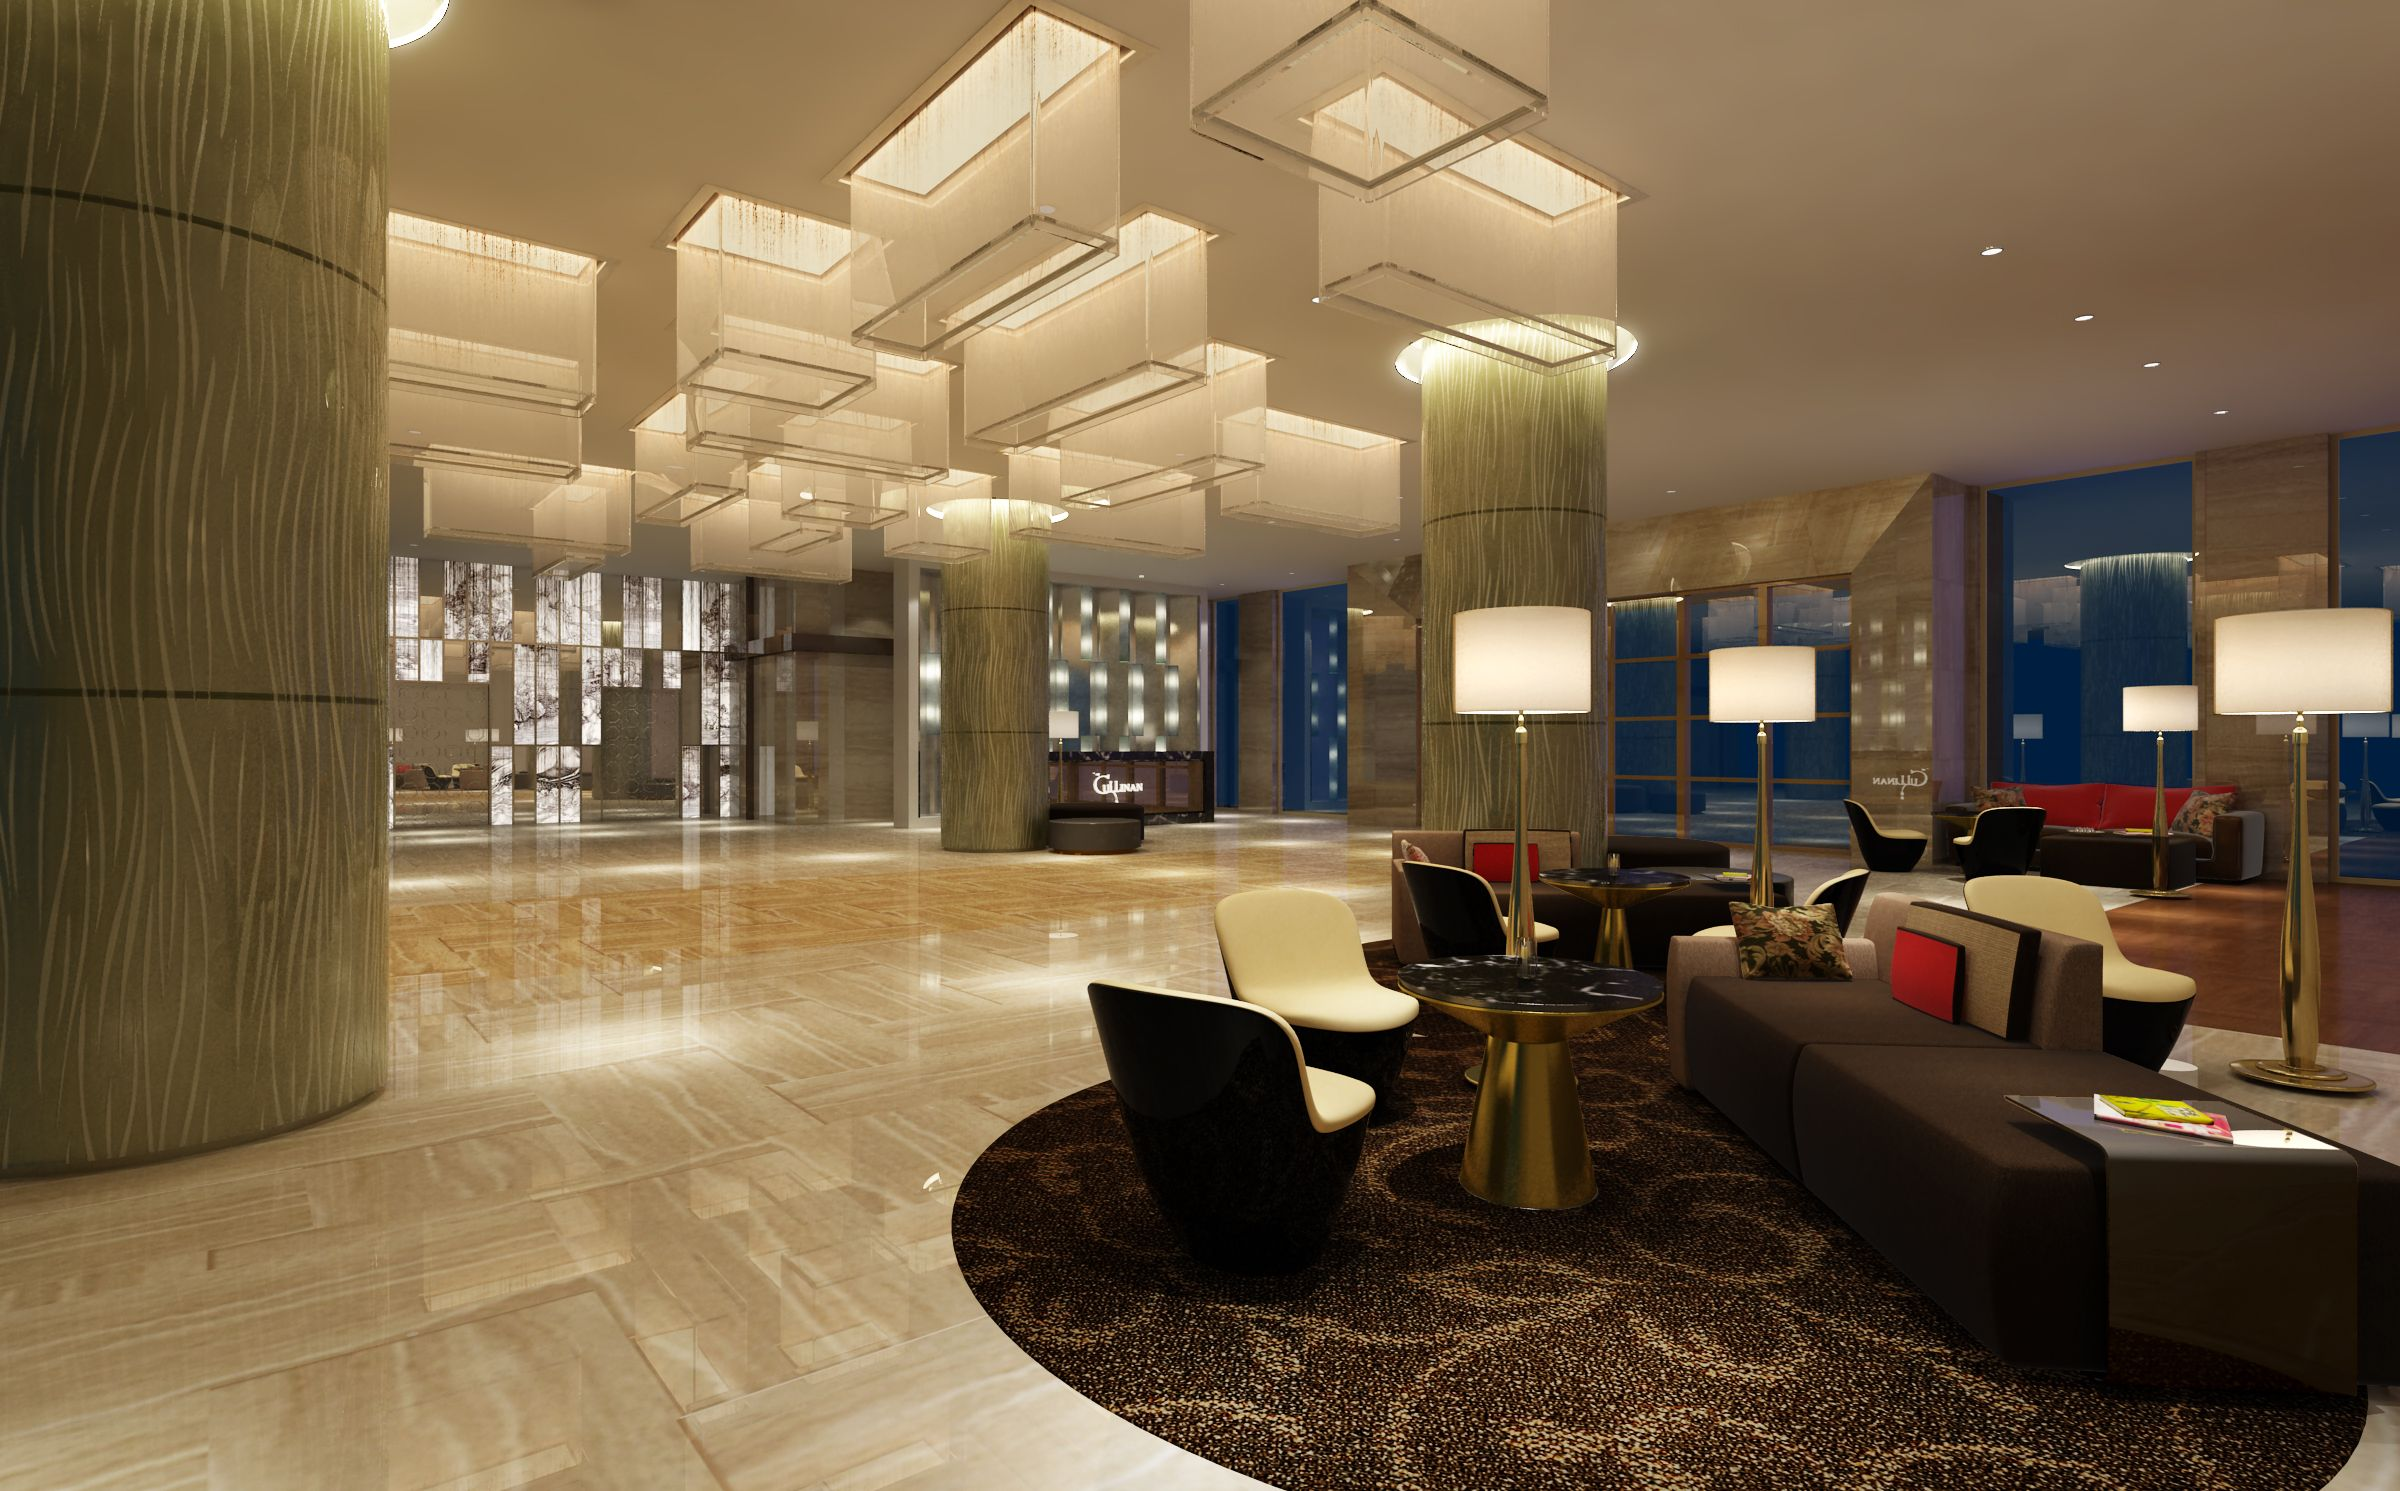 Lobby Design Ideas Modern Hotel Lobby Interior Design Architecture Hotel